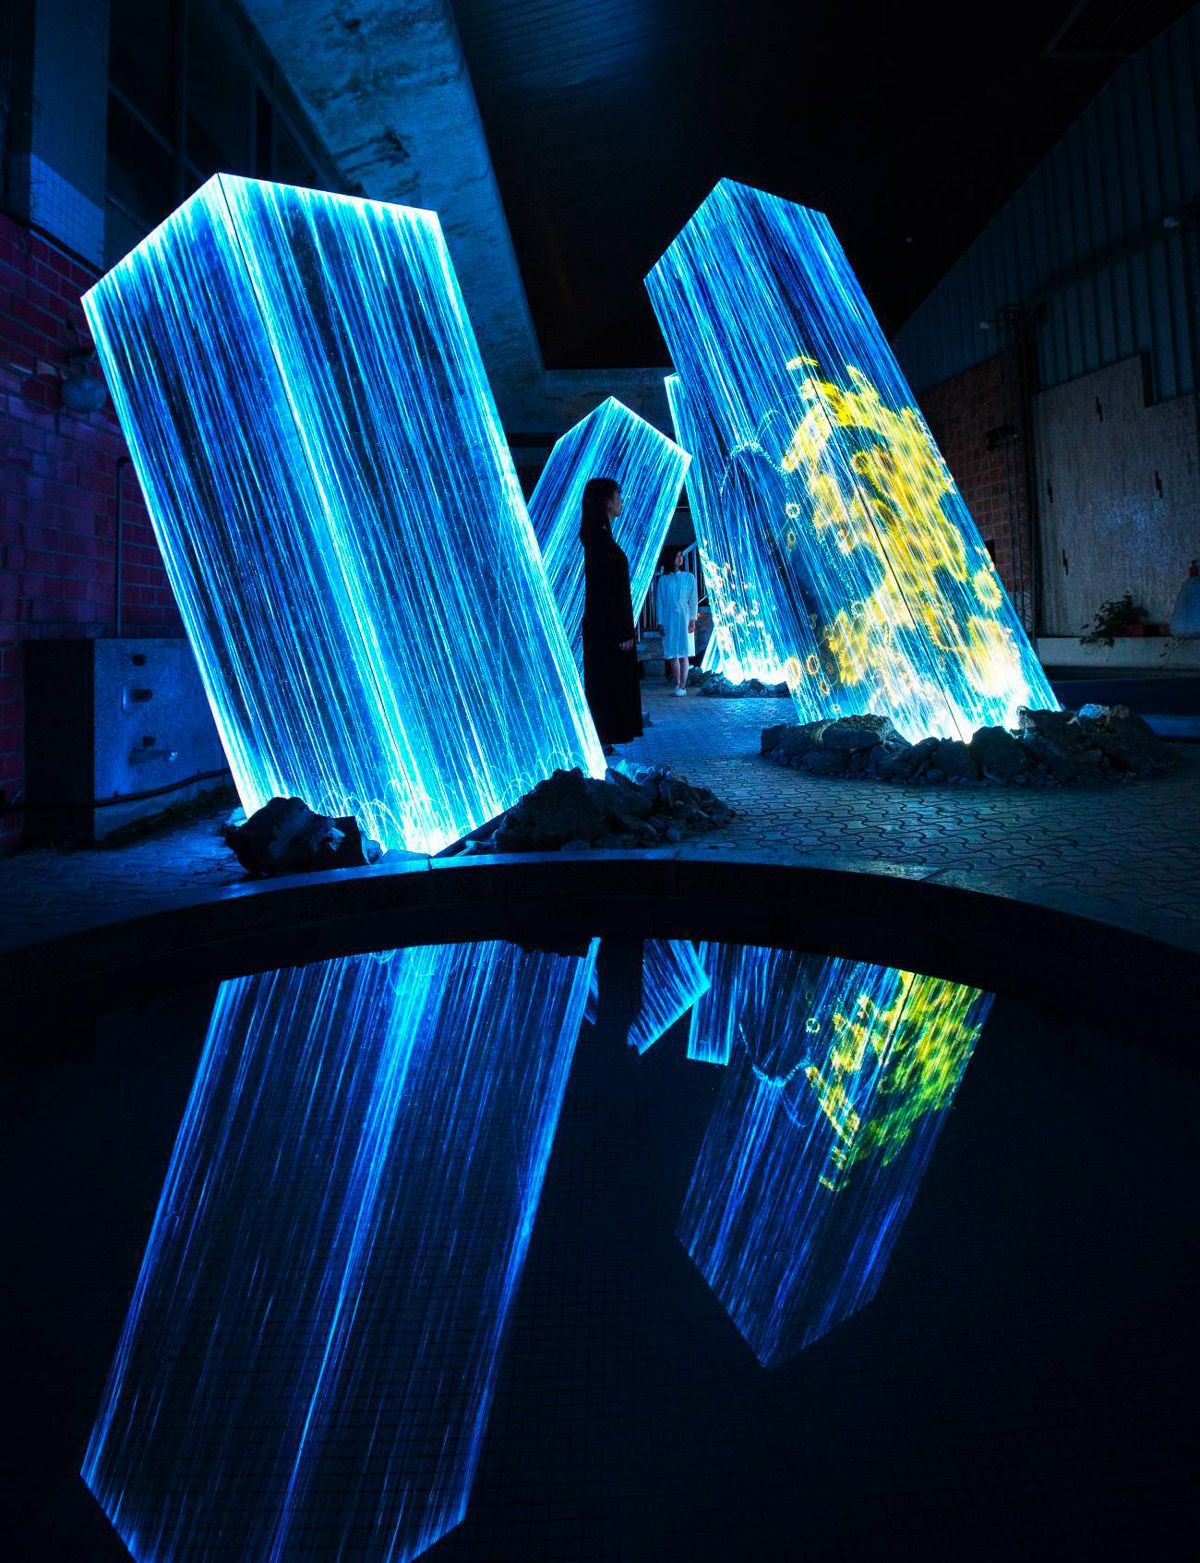 Four Seasons of Flowers Appear to Blossom and Wither in a Responsive Installation by teamLab